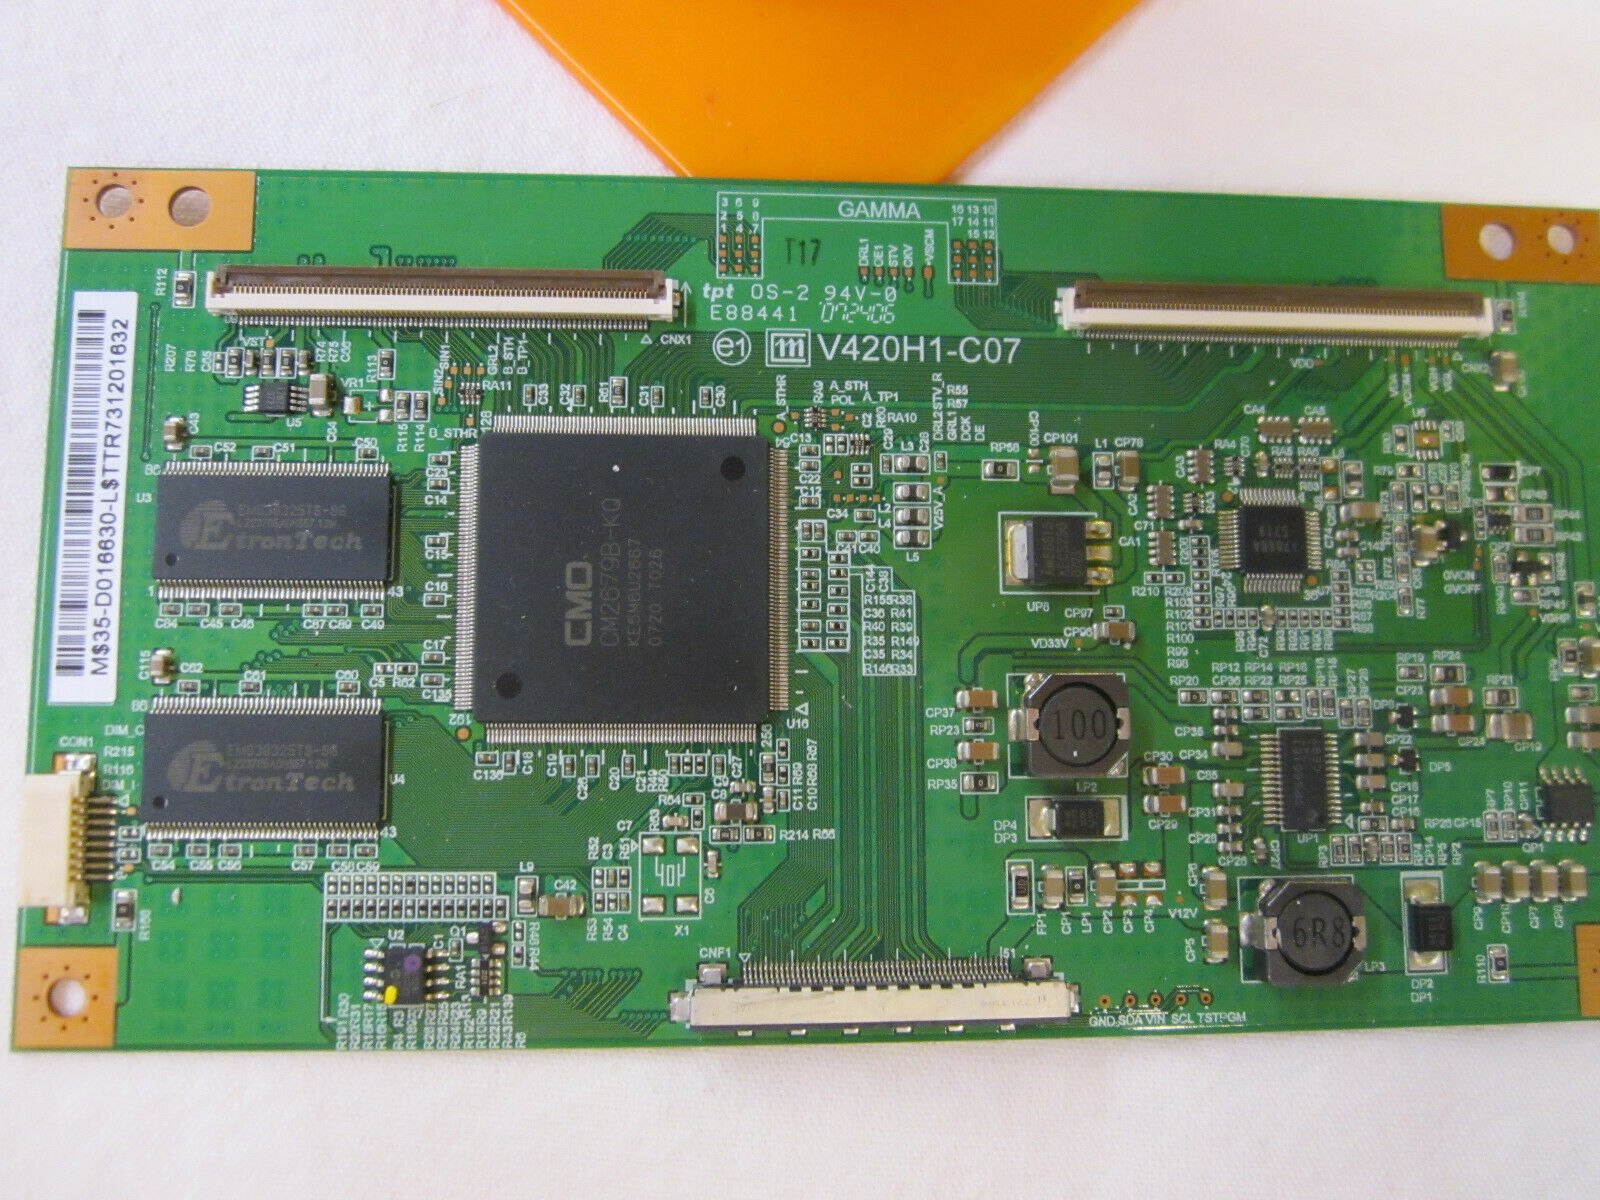 Philips 996510010061 (V420H1-C07, 35-D016630) T-Con Board for Hitachi | Insignia - $36.00